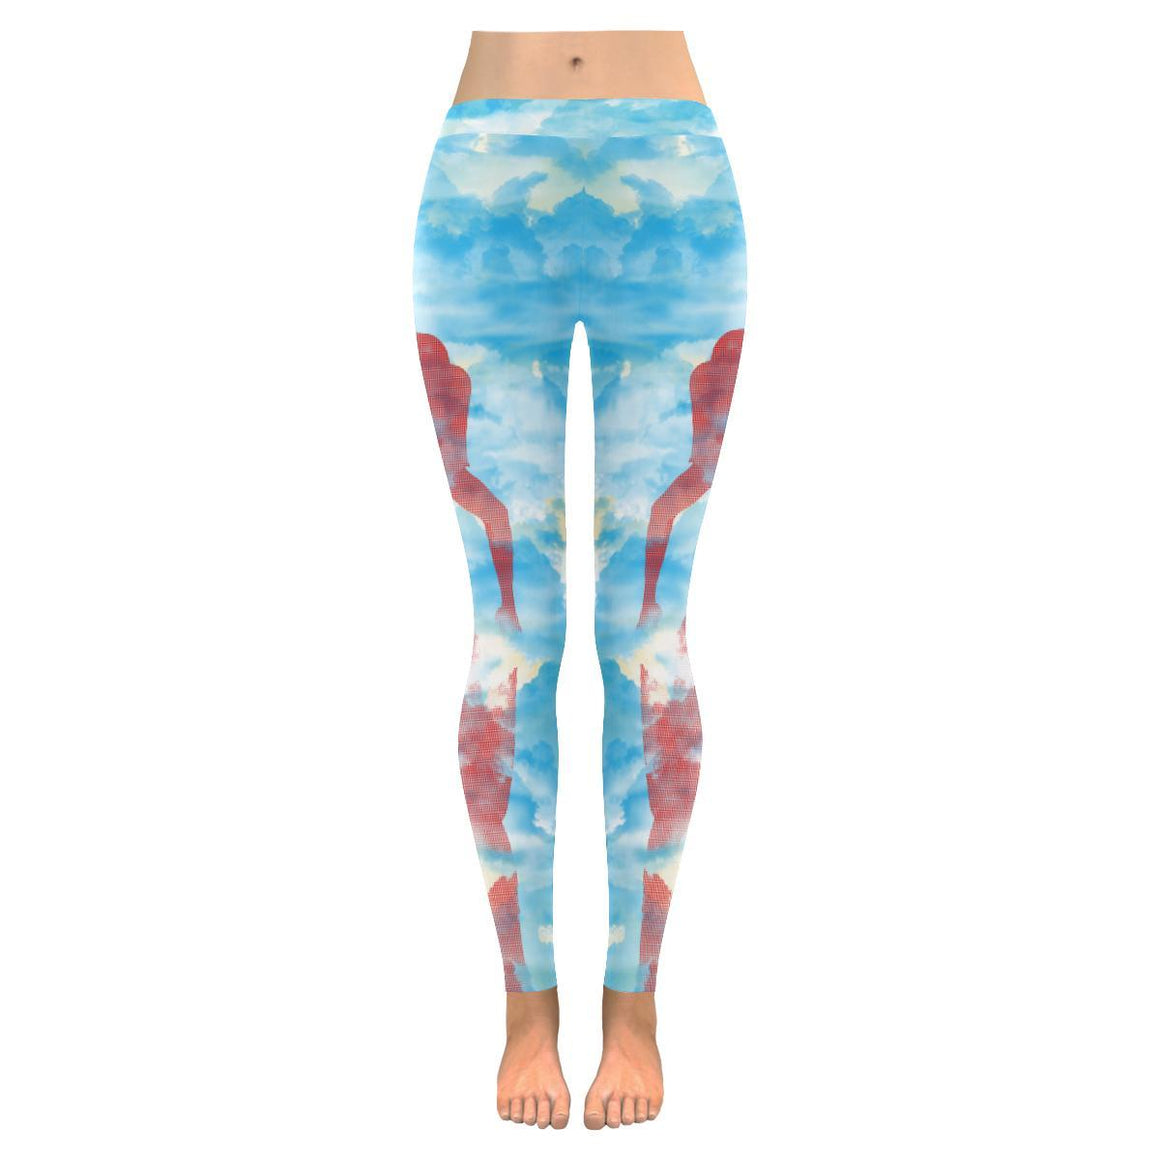 e-joyer Low Rise Leggings (Invisible Stitch) Yoga Sky Low Rise Leggings